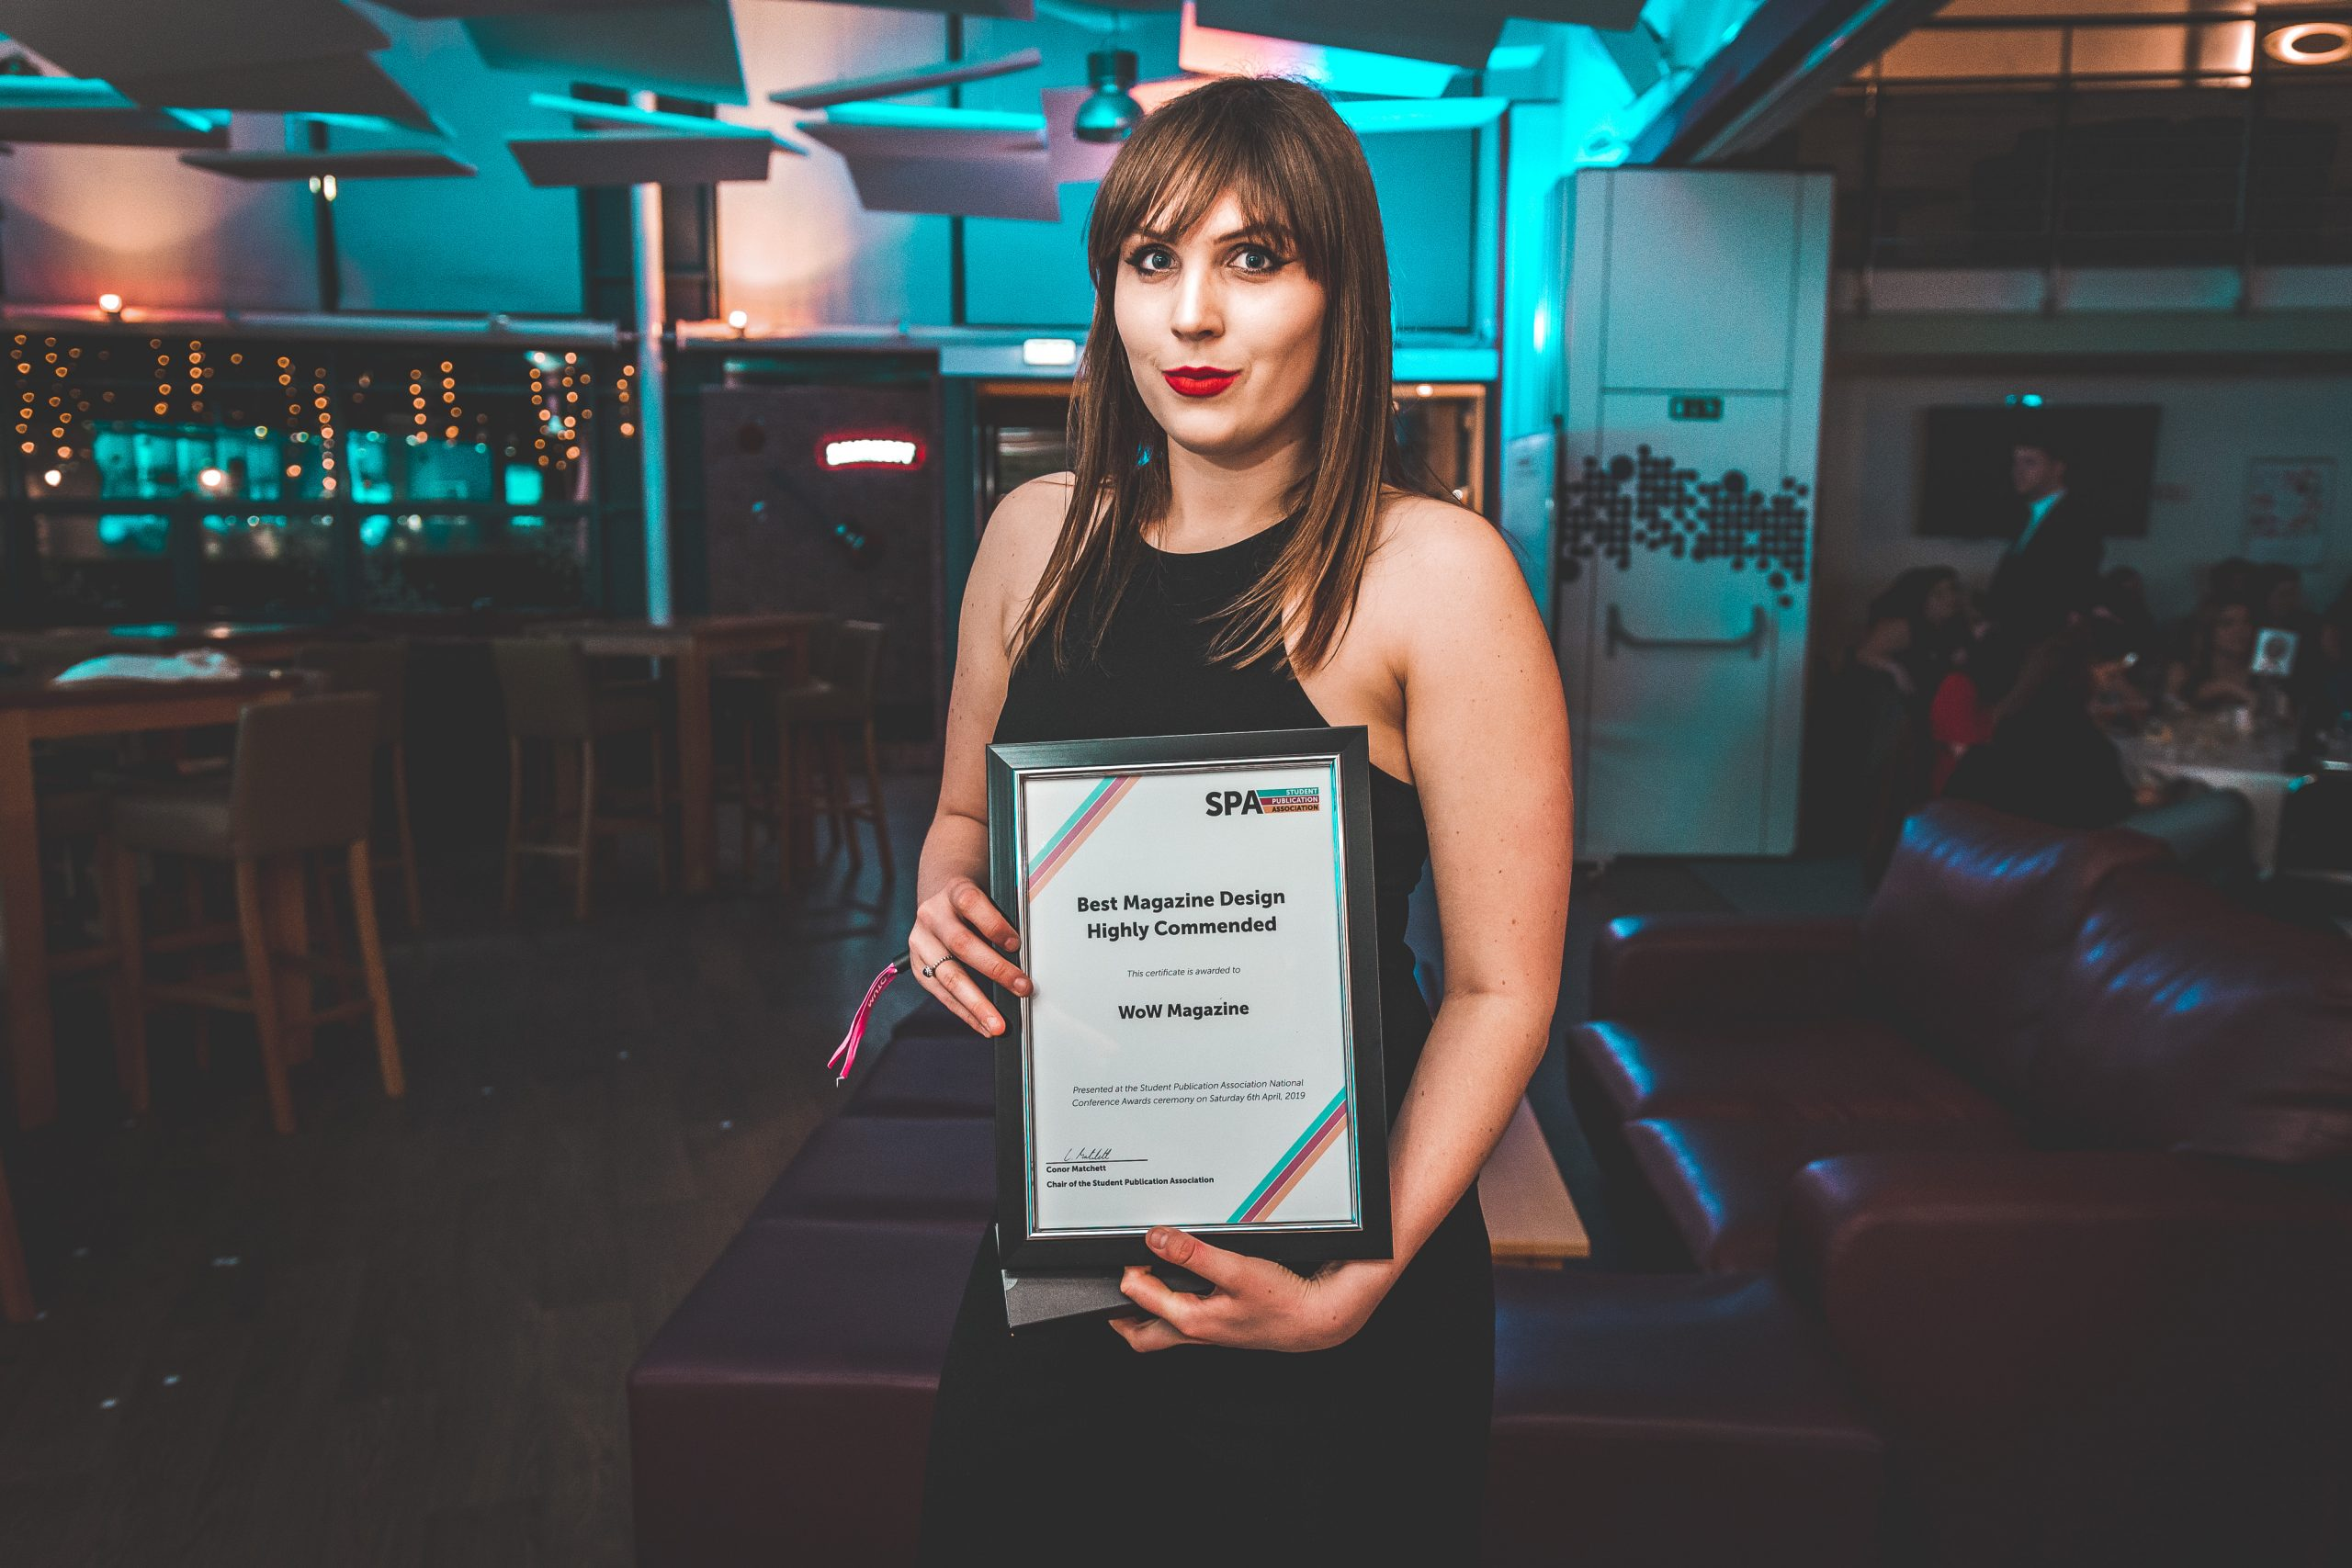 News Associates alumna Alice collecting with her award at the SPA National Conference in 2019. She's holding her framed certificate posing at the camera. She's wearing a formal black dress, her brown hair is straight and she's wearing red lipstick.